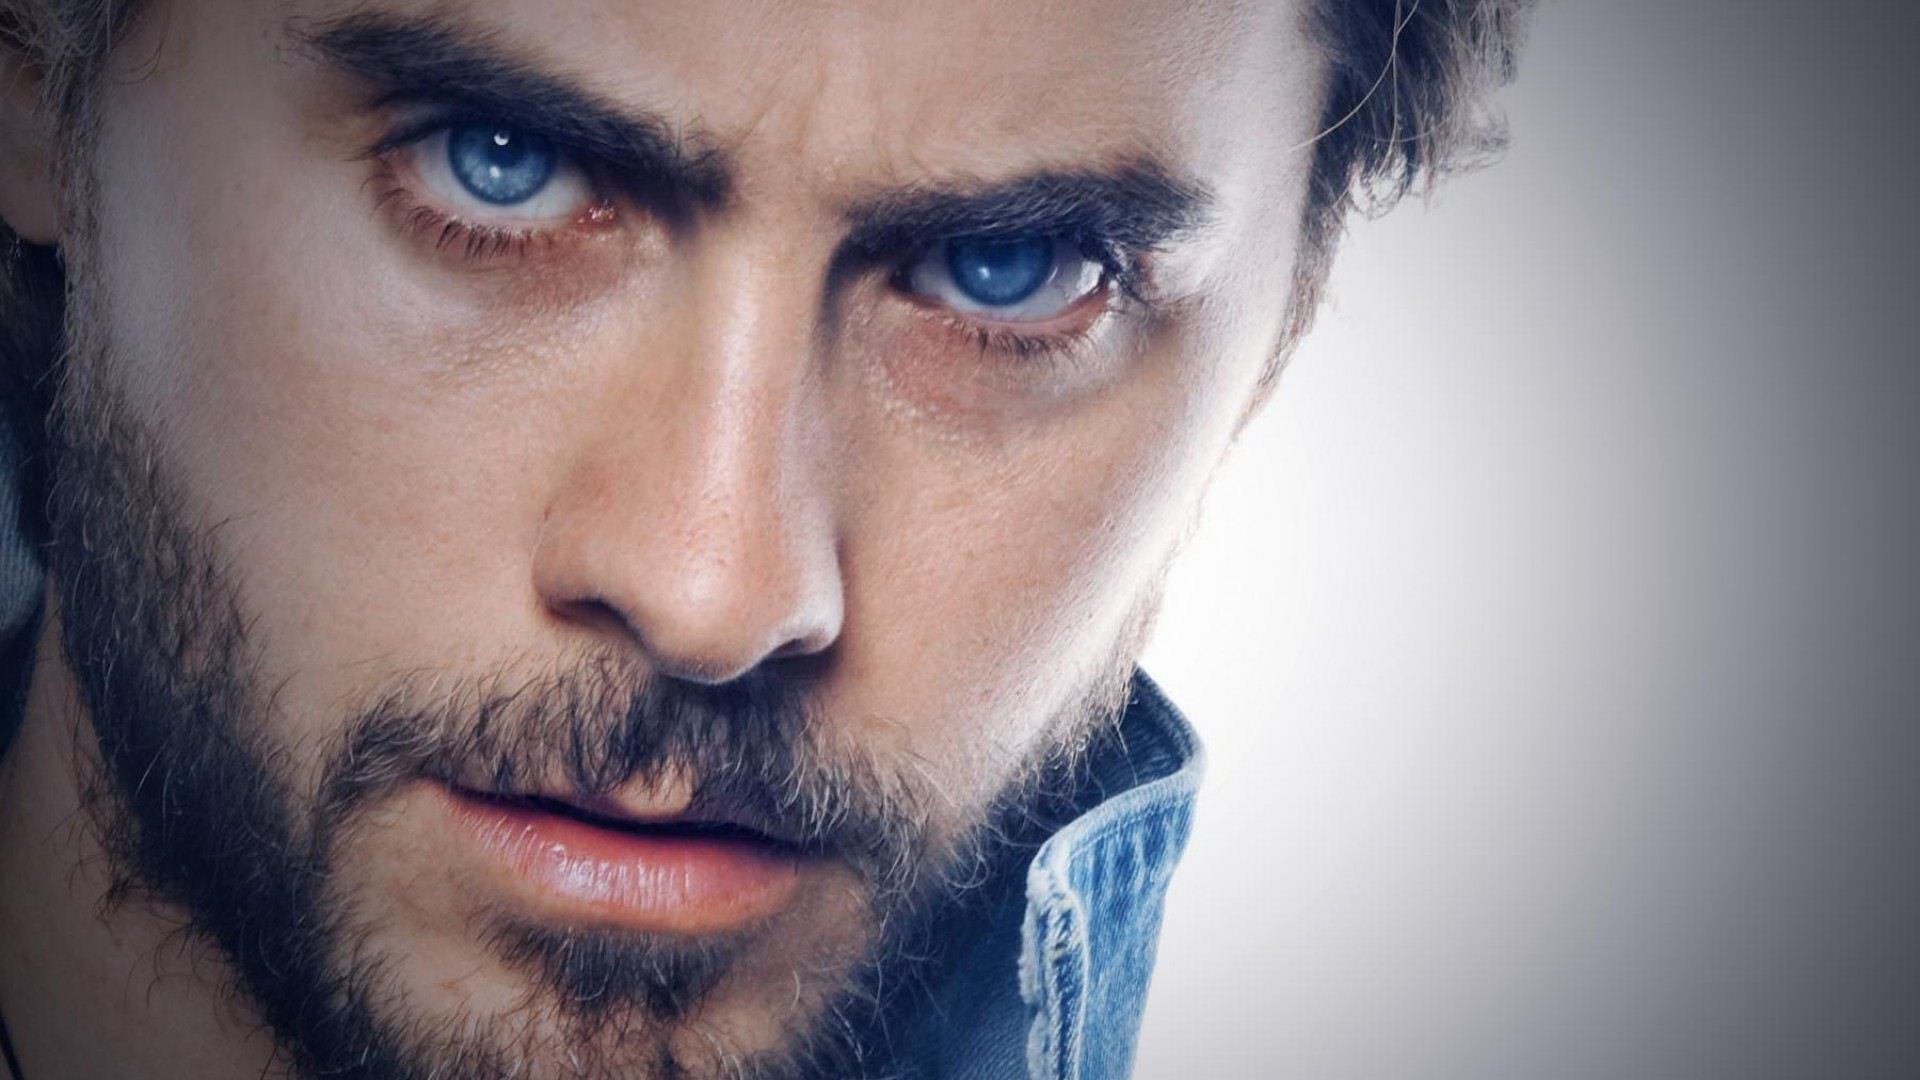 Jared Leto Wallpapers High Resolution and Quality Download Jared Leto